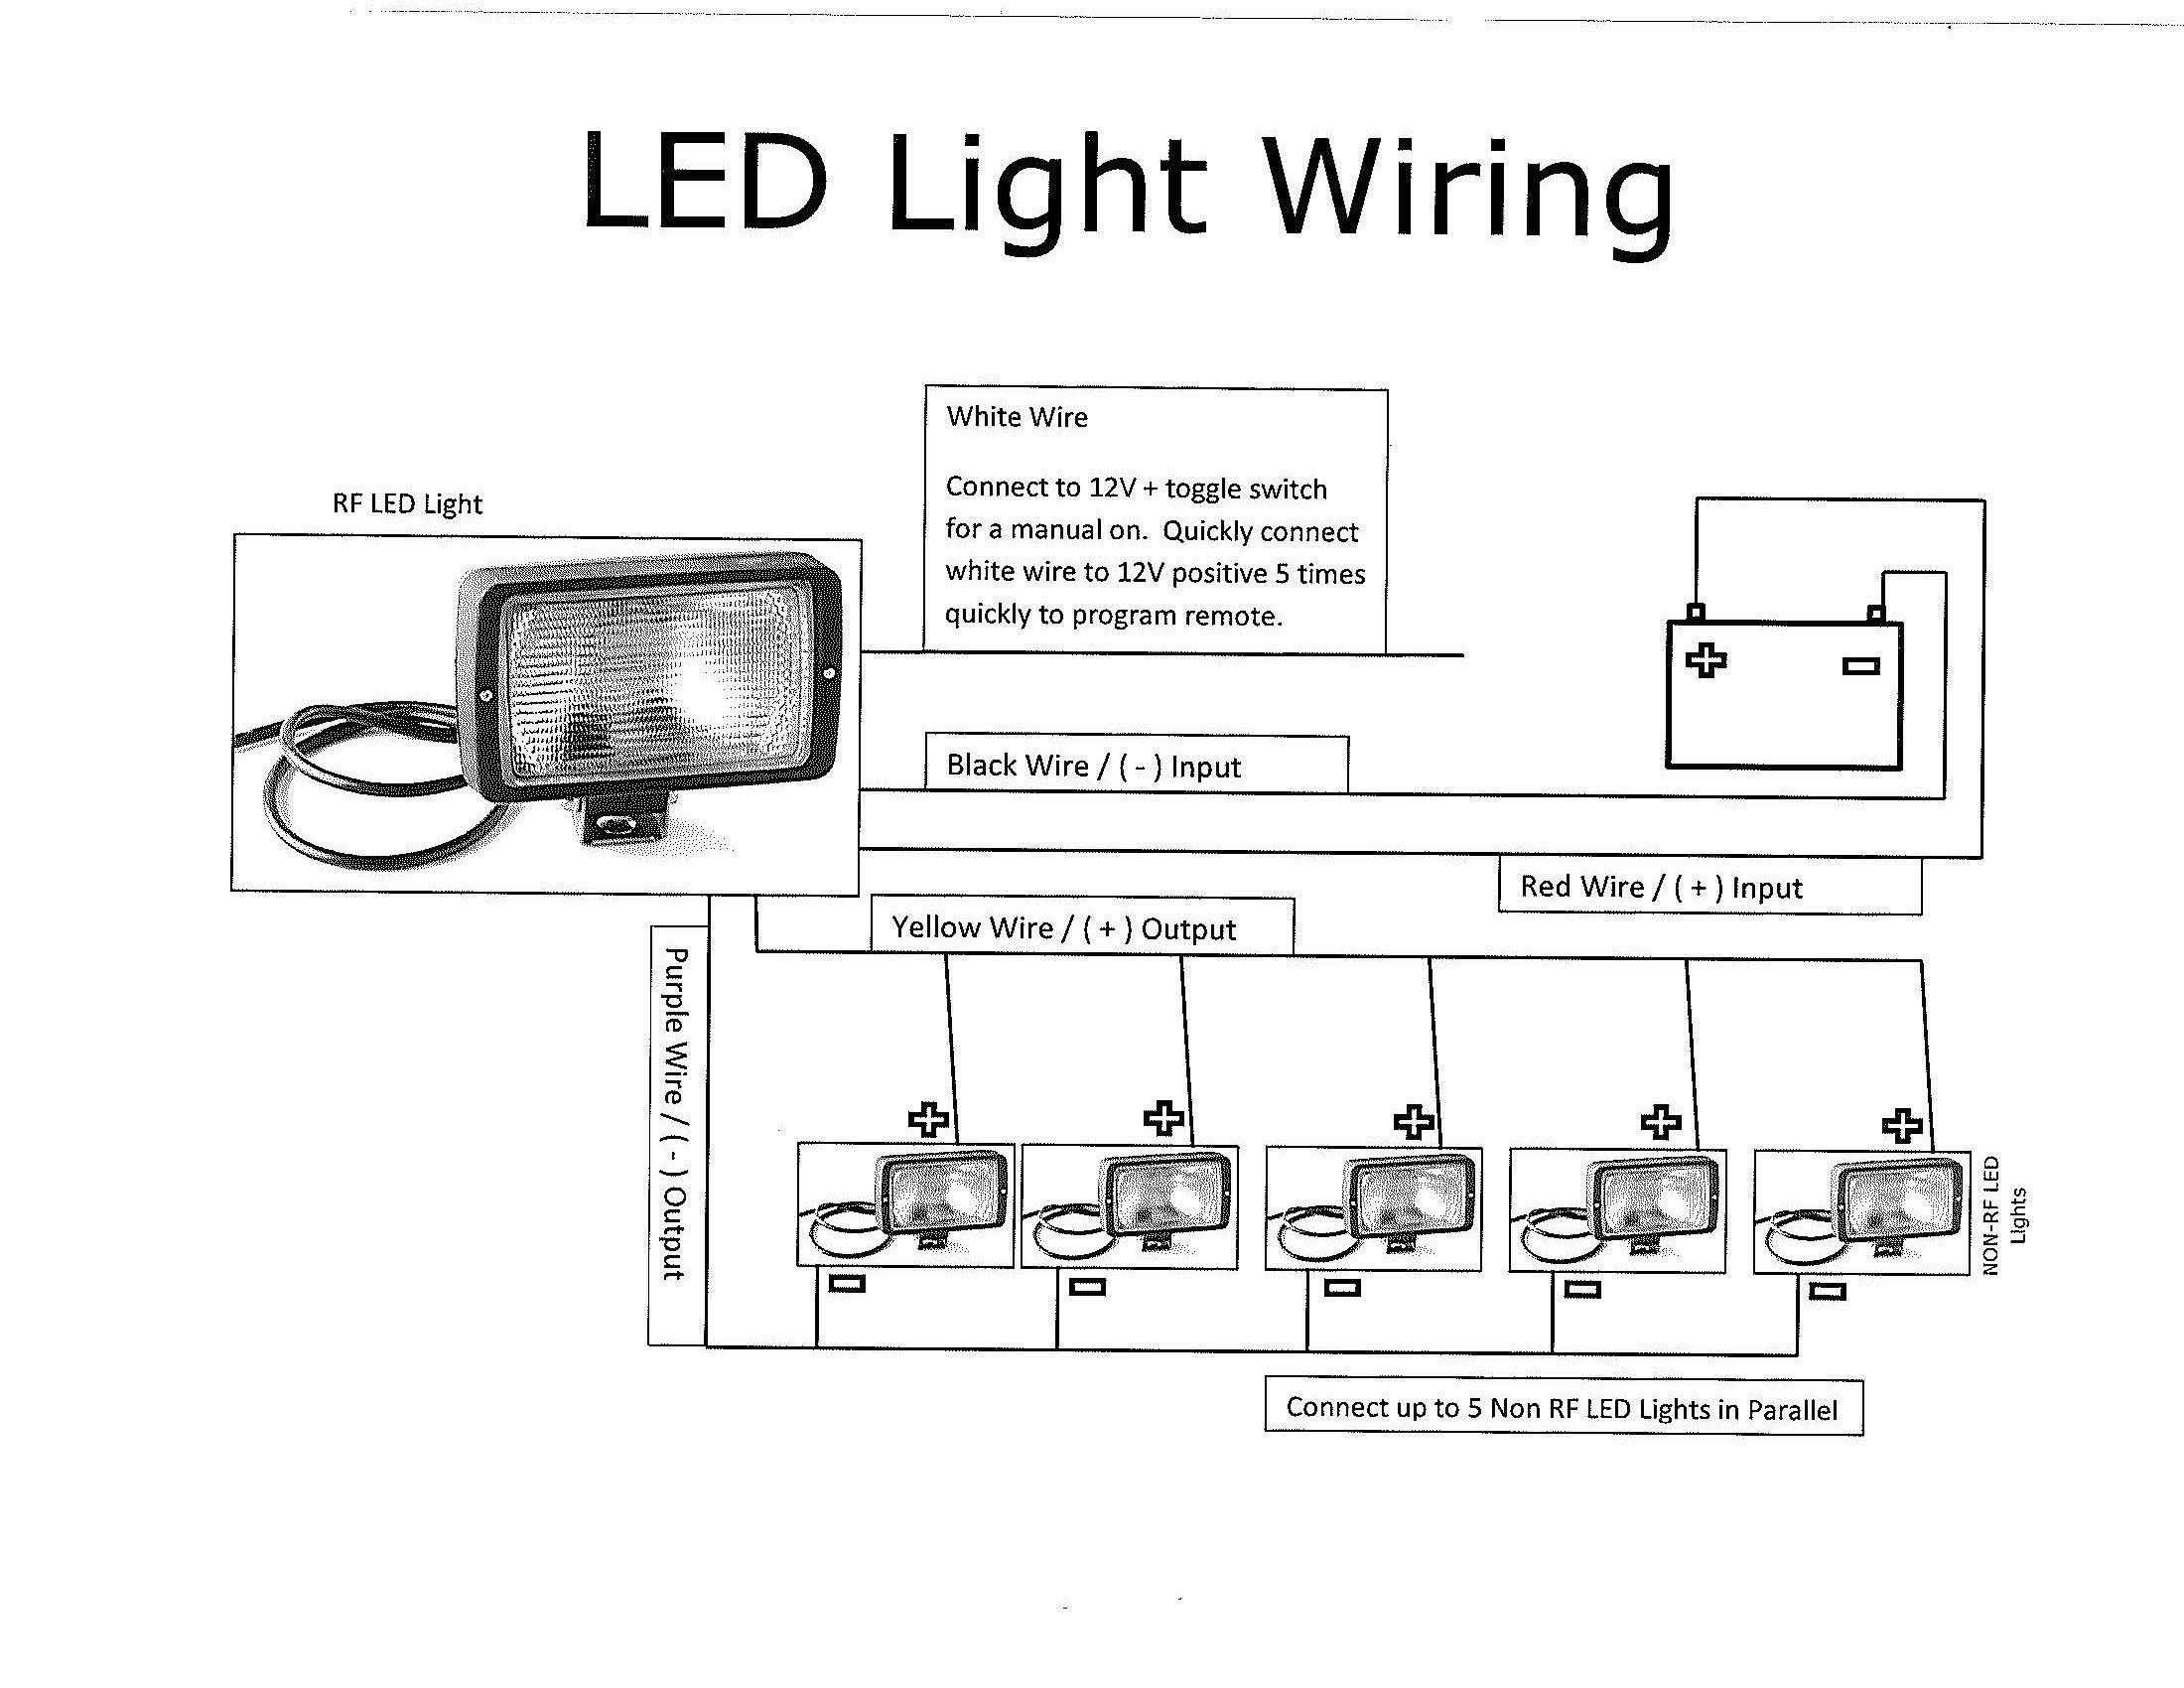 Peachy Wiring Diagram For 4 Lights With One Switch Wiring Diagram Database Wiring Digital Resources Funapmognl